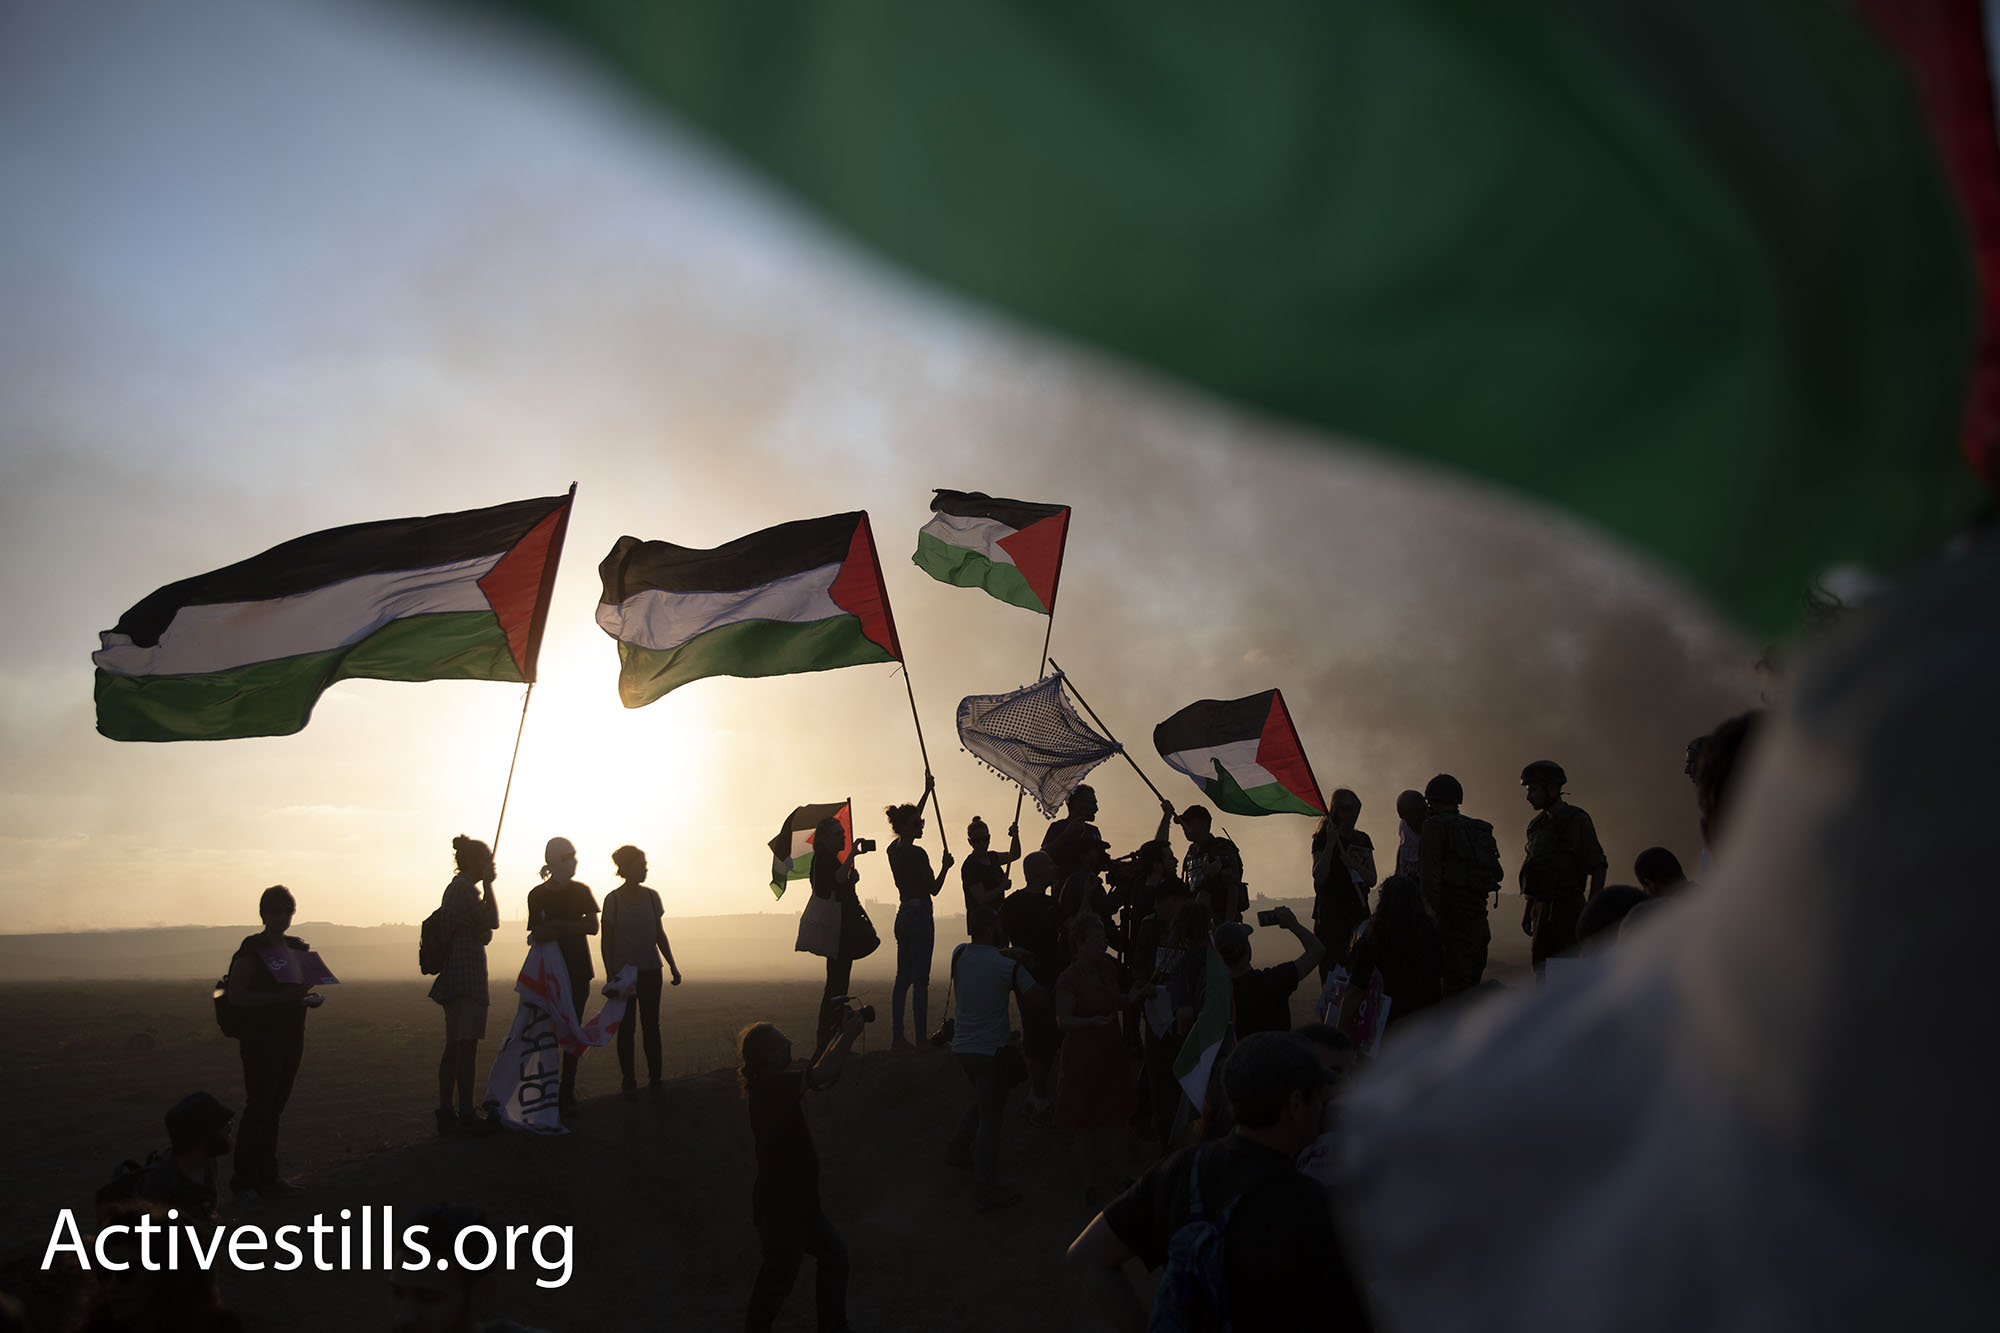 Dozens of Israeli and Palestinian activists protested on the Israeli side of the Gaza fence in solidarity with the Great Return March. Palestinian demonstrators responded with cheers of joy at the sight of the Palestinian flags. (Oren Ziv/Activestills.org)